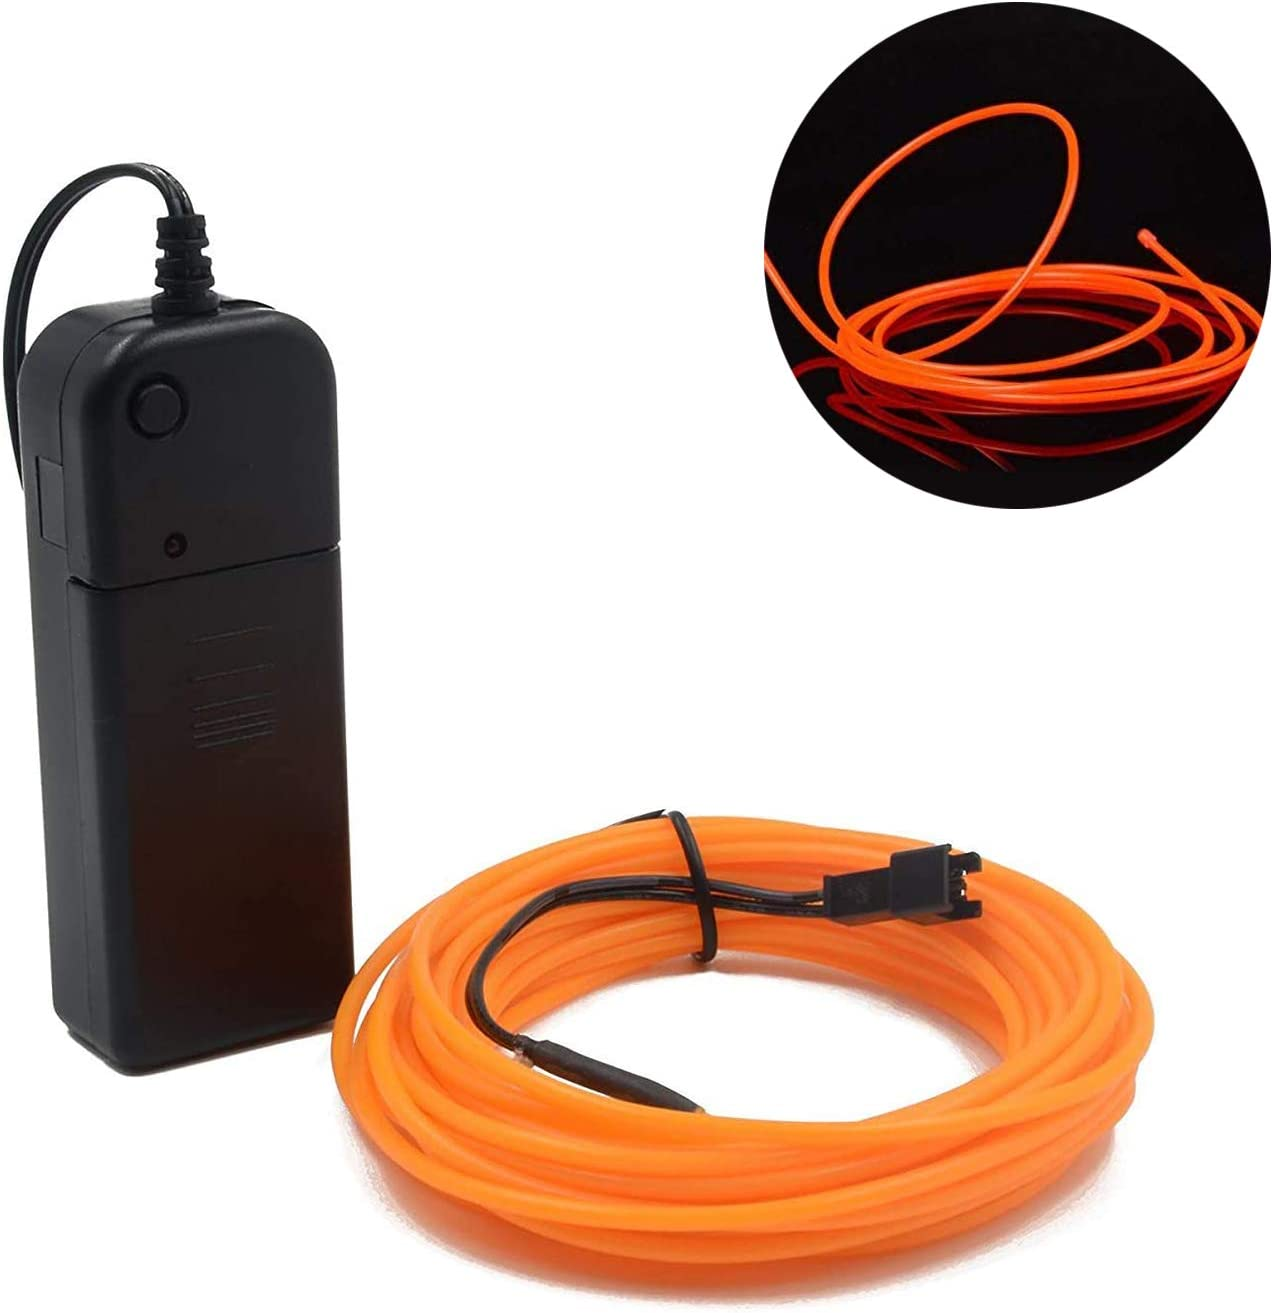 Orange EL Wire Neon Glowing Strobing Electroluminescent Wire Battery Operated Super Bright Light 3M/9.84Feet EL Wire for Cosplay Dress Festival Parties Halloween DIY Decoration (Orange)